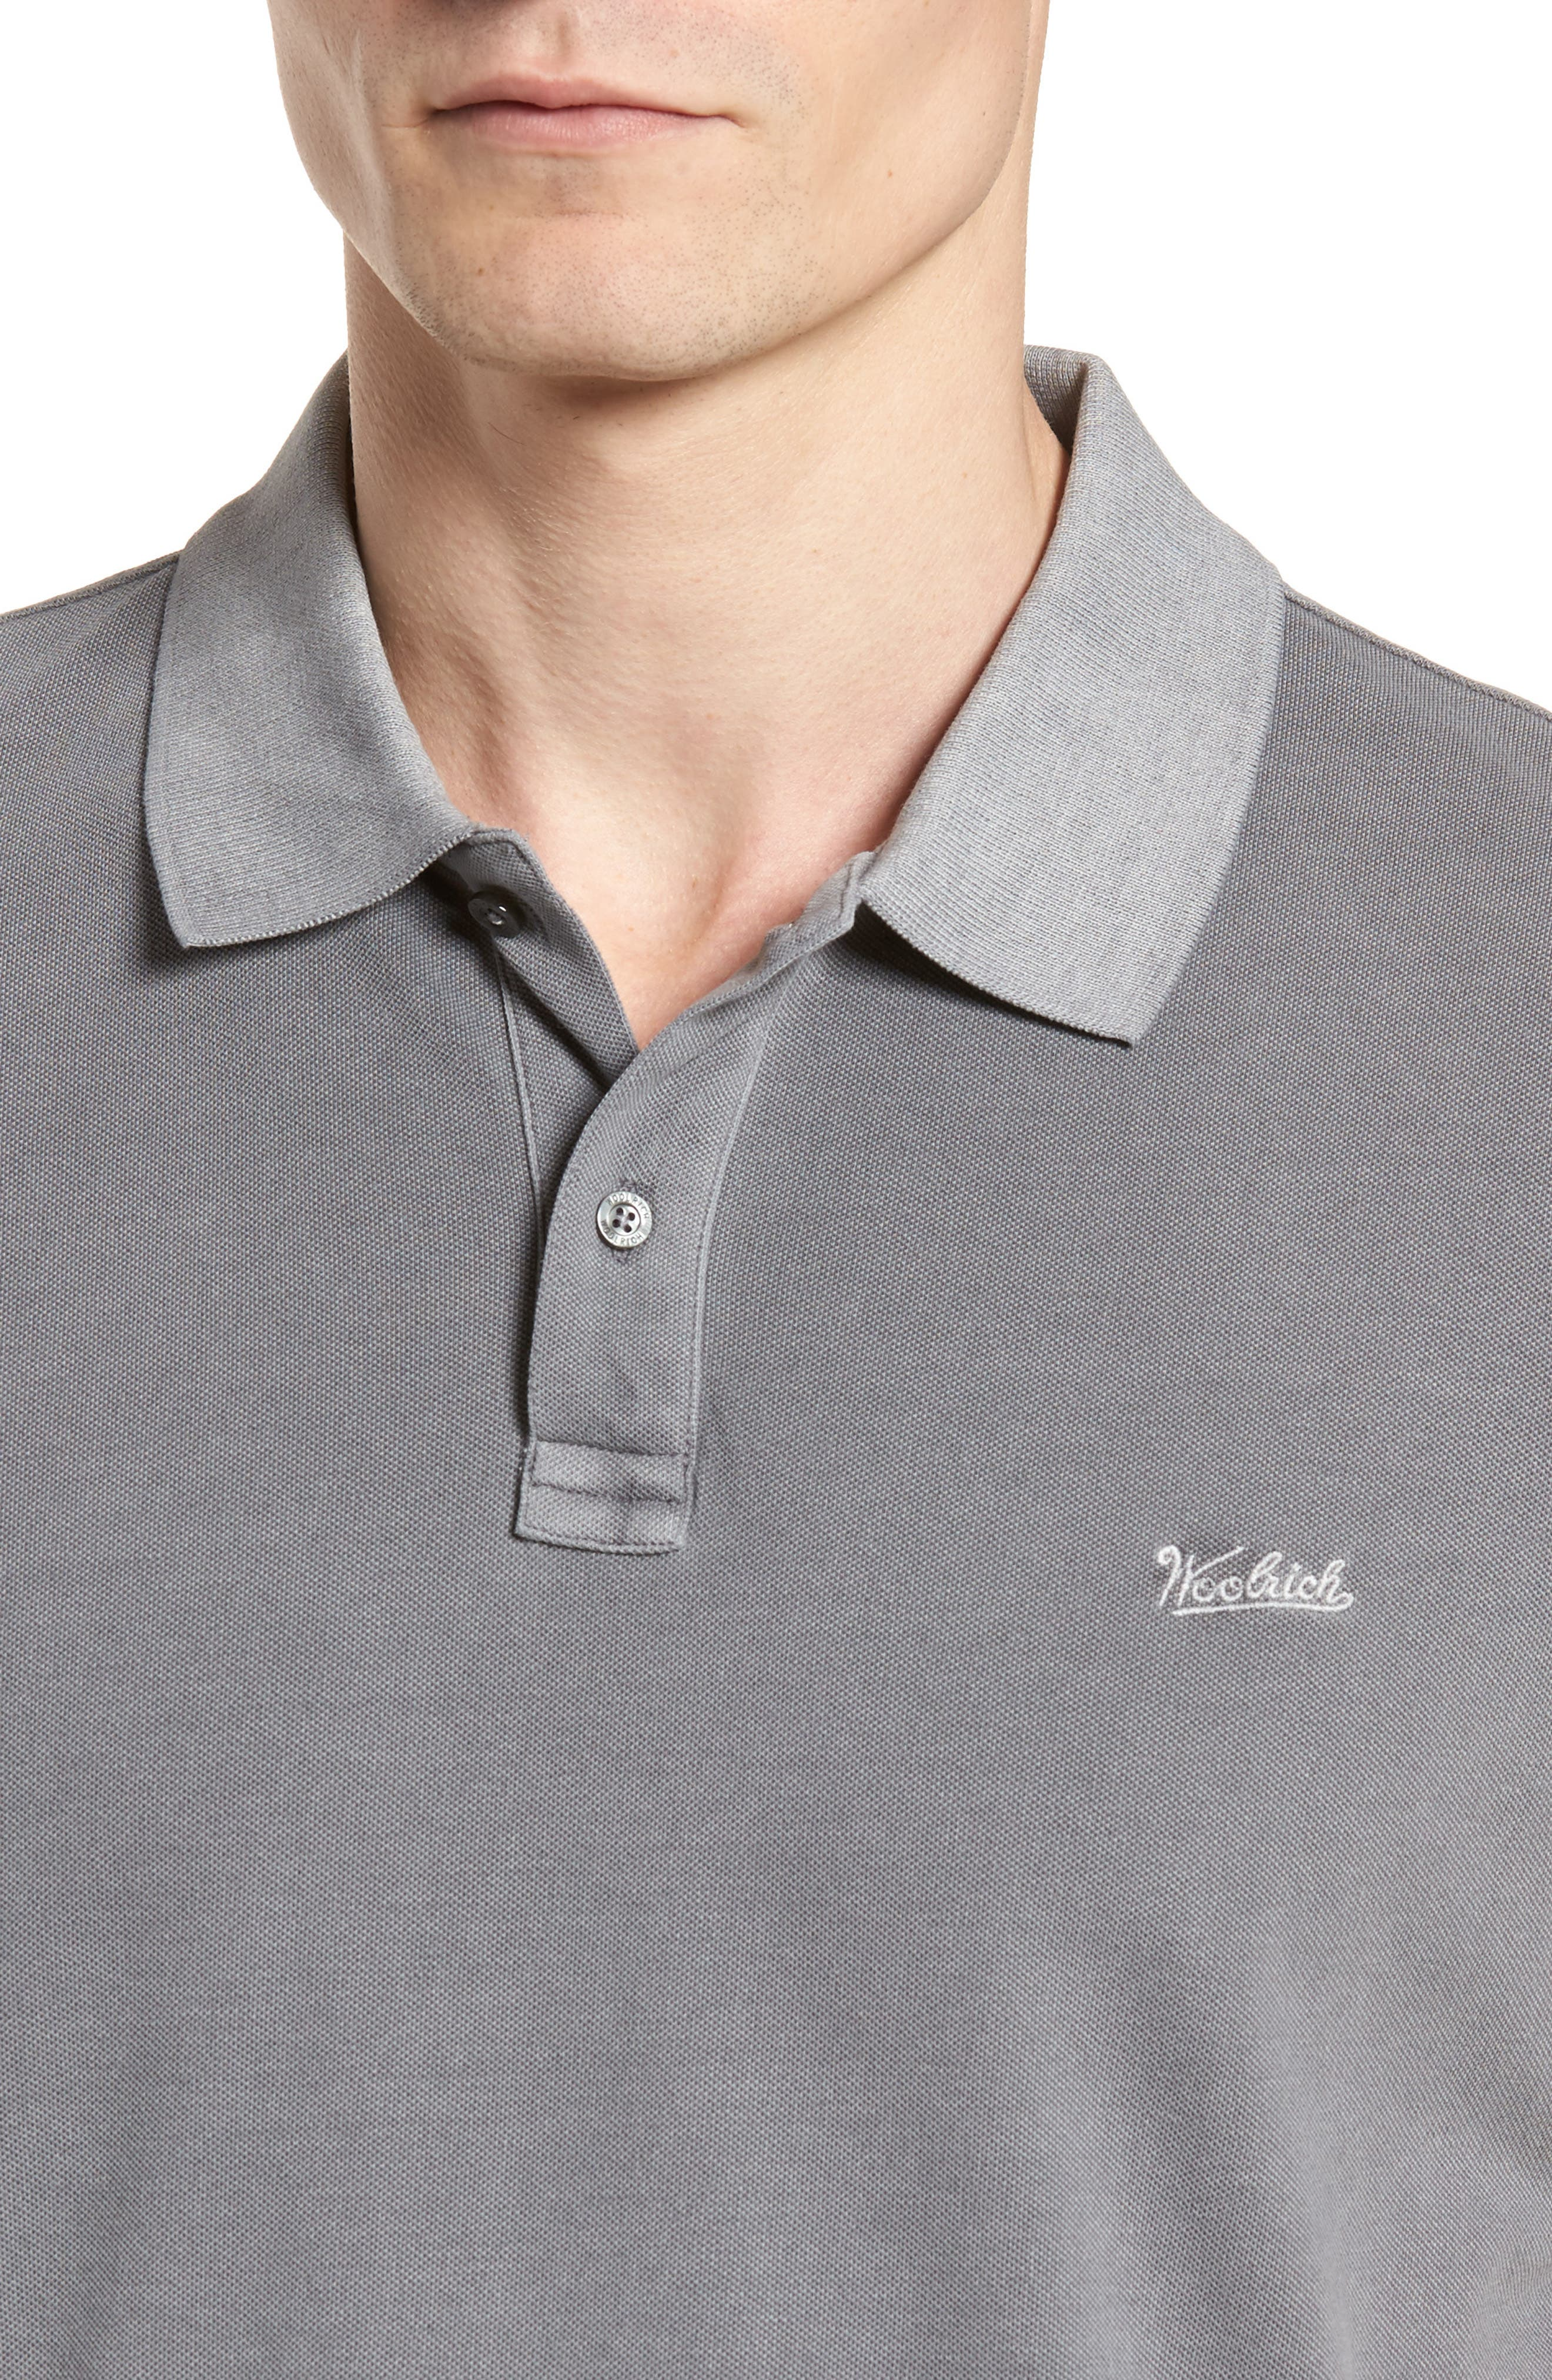 & Bros. Vintage Mackinack Polo,                             Alternate thumbnail 4, color,                             STEEL GREY